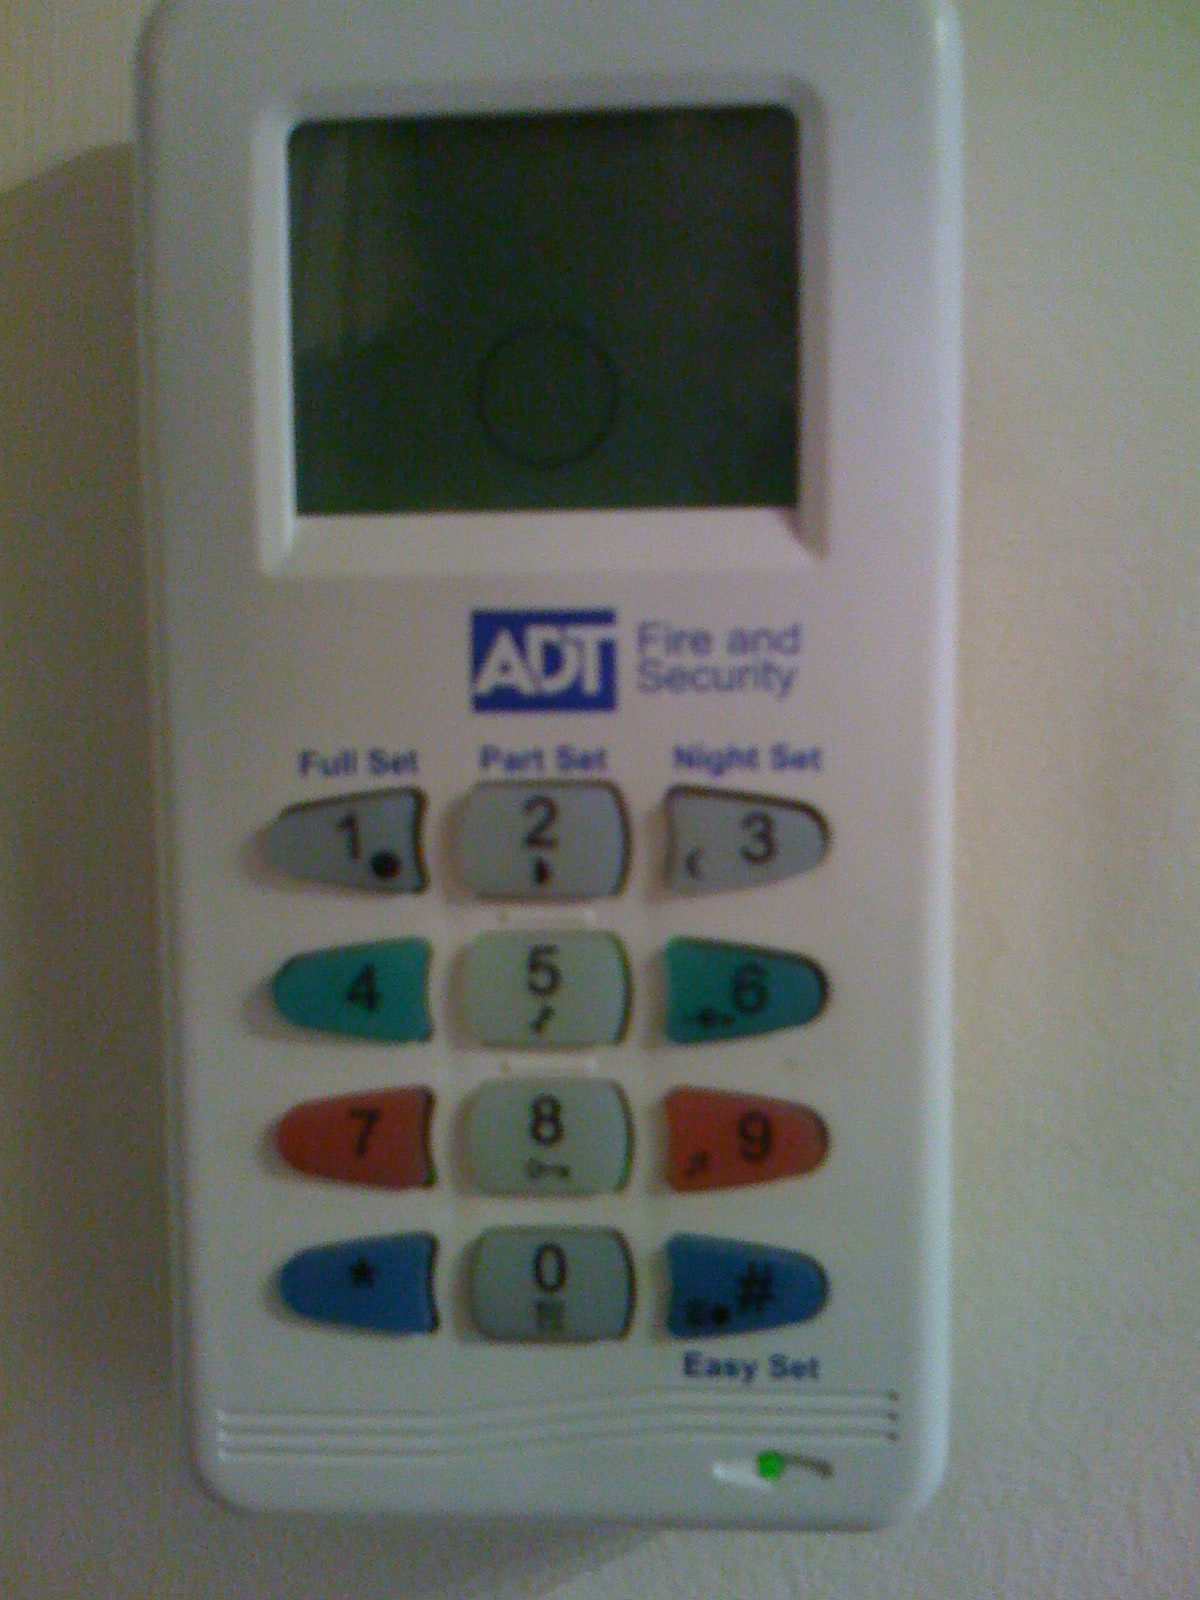 ADT Safewatch Pro 3000 Manuals and User Guides, Security ...